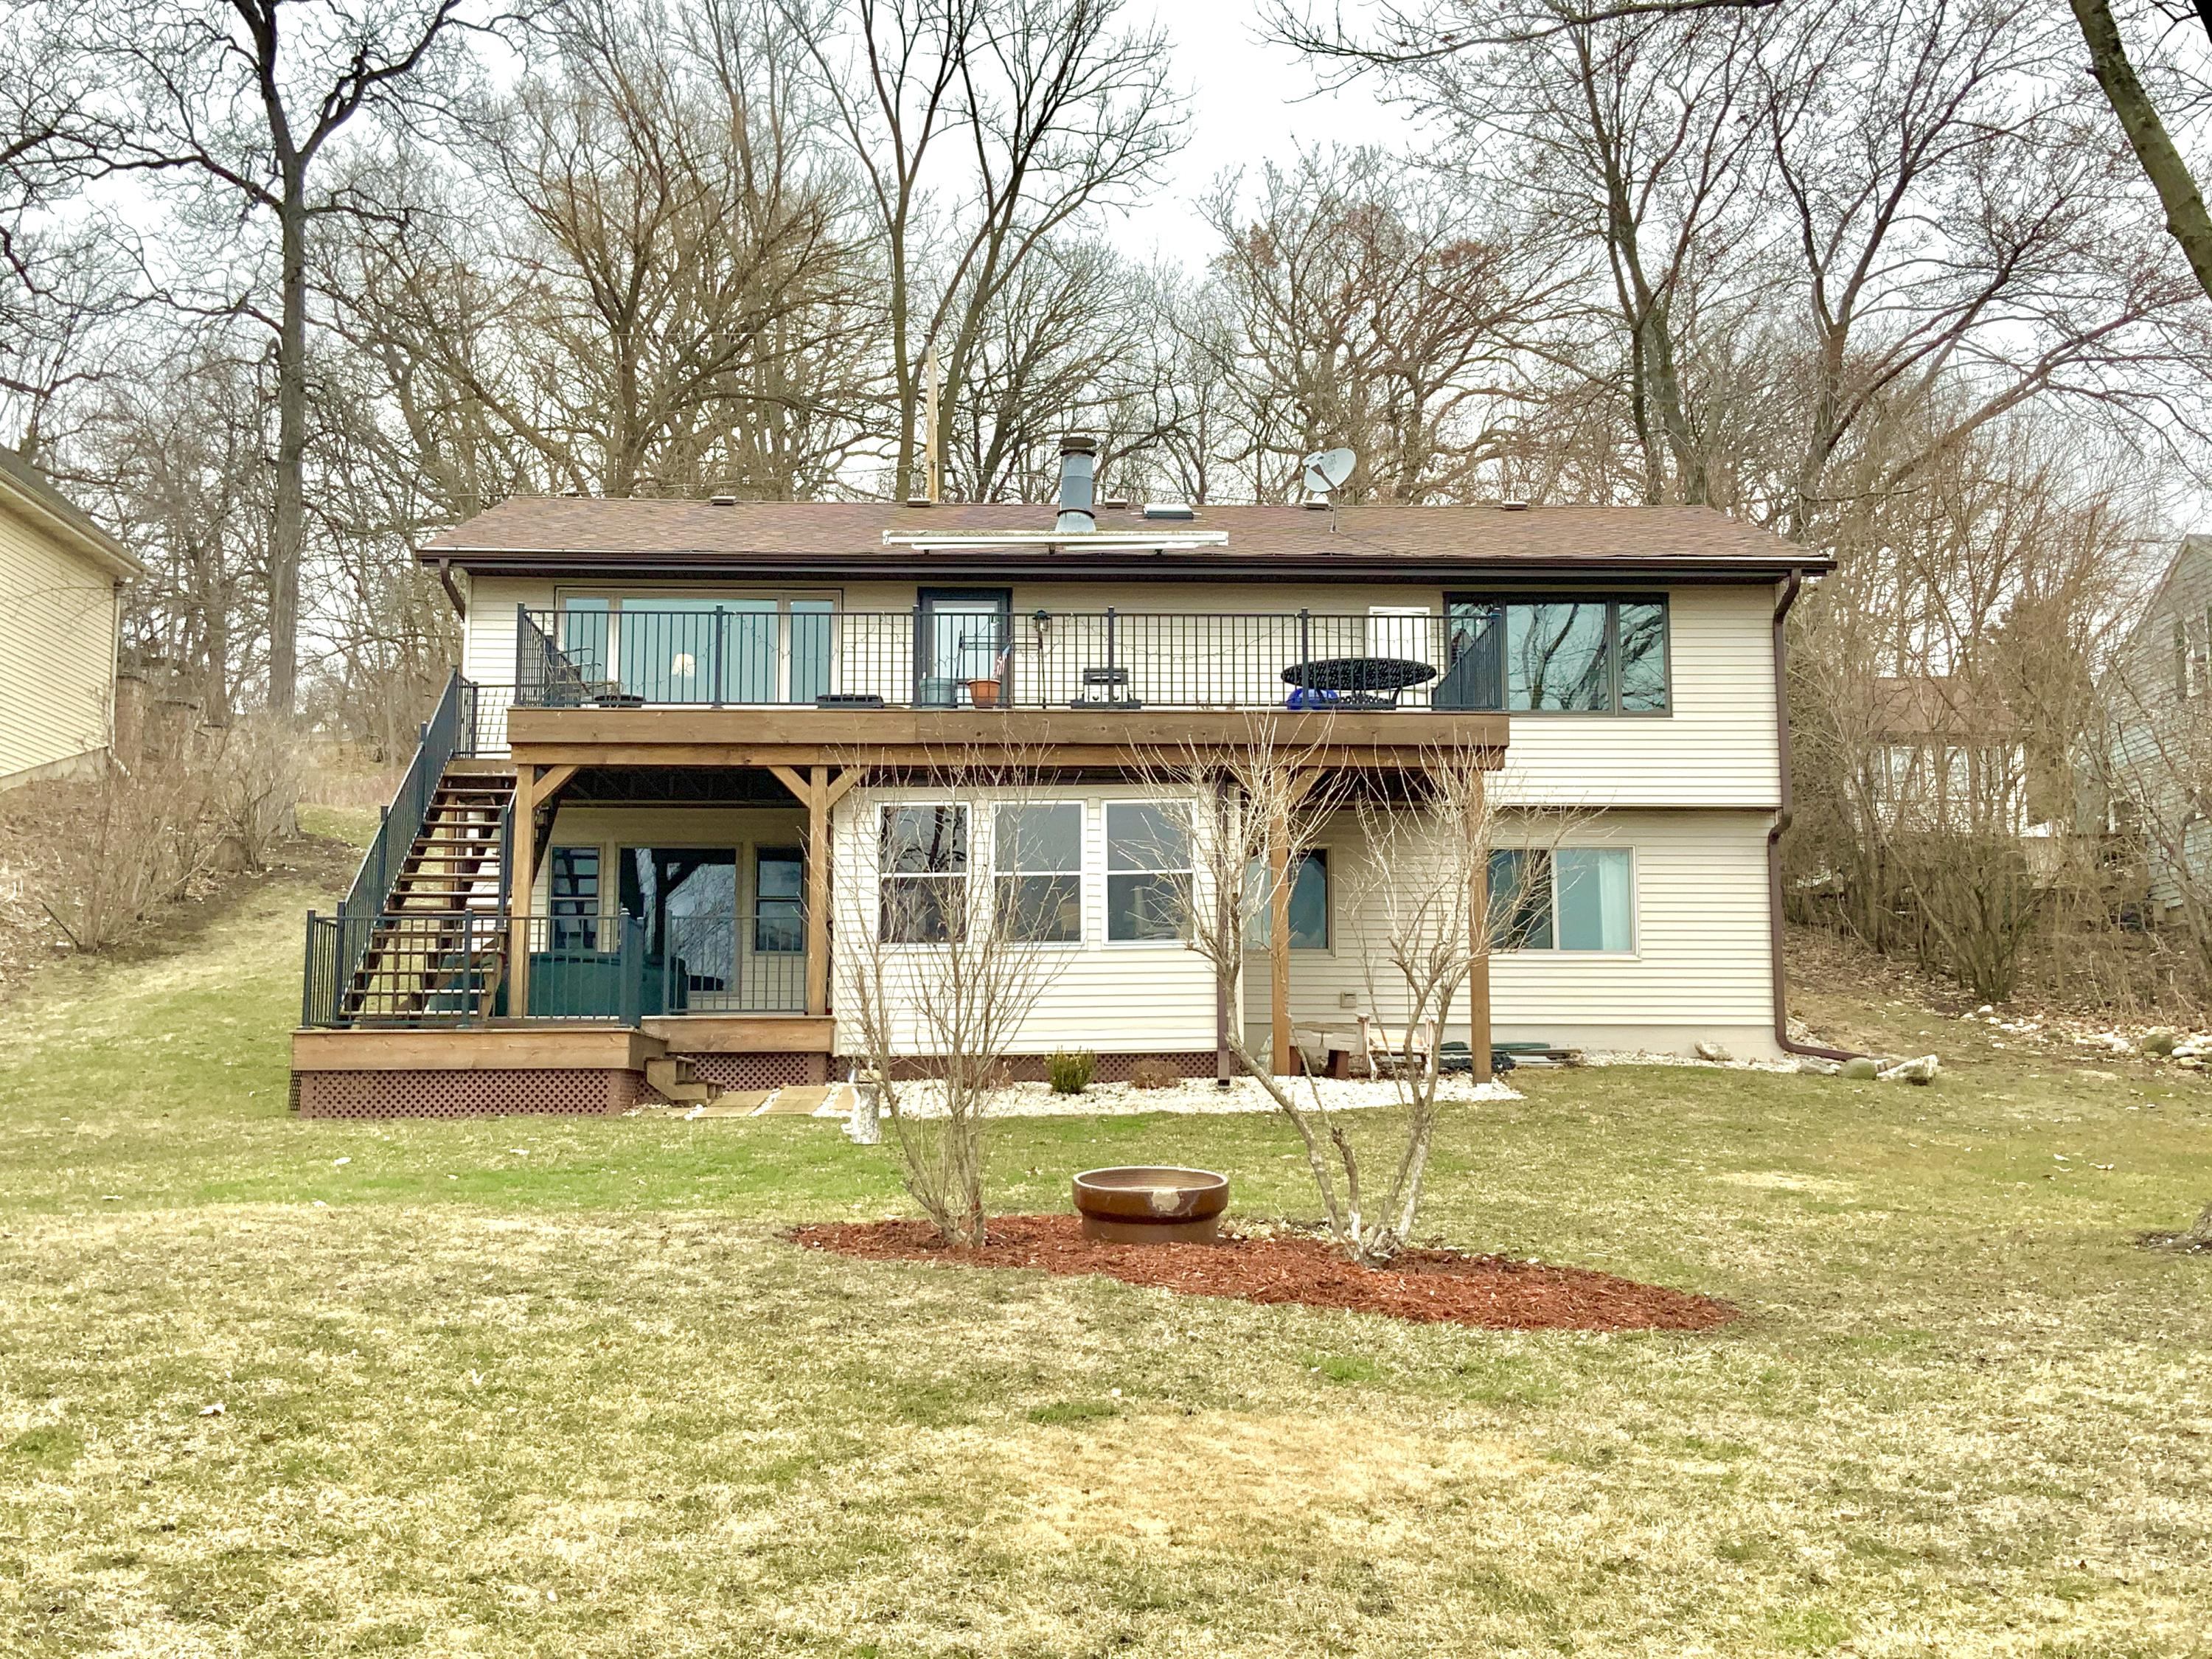 N39W27383 Hillside Grove Rd, Pewaukee, Wisconsin 53072, 3 Bedrooms Bedrooms, ,2 BathroomsBathrooms,Single-Family,For Sale,Hillside Grove Rd,1681975